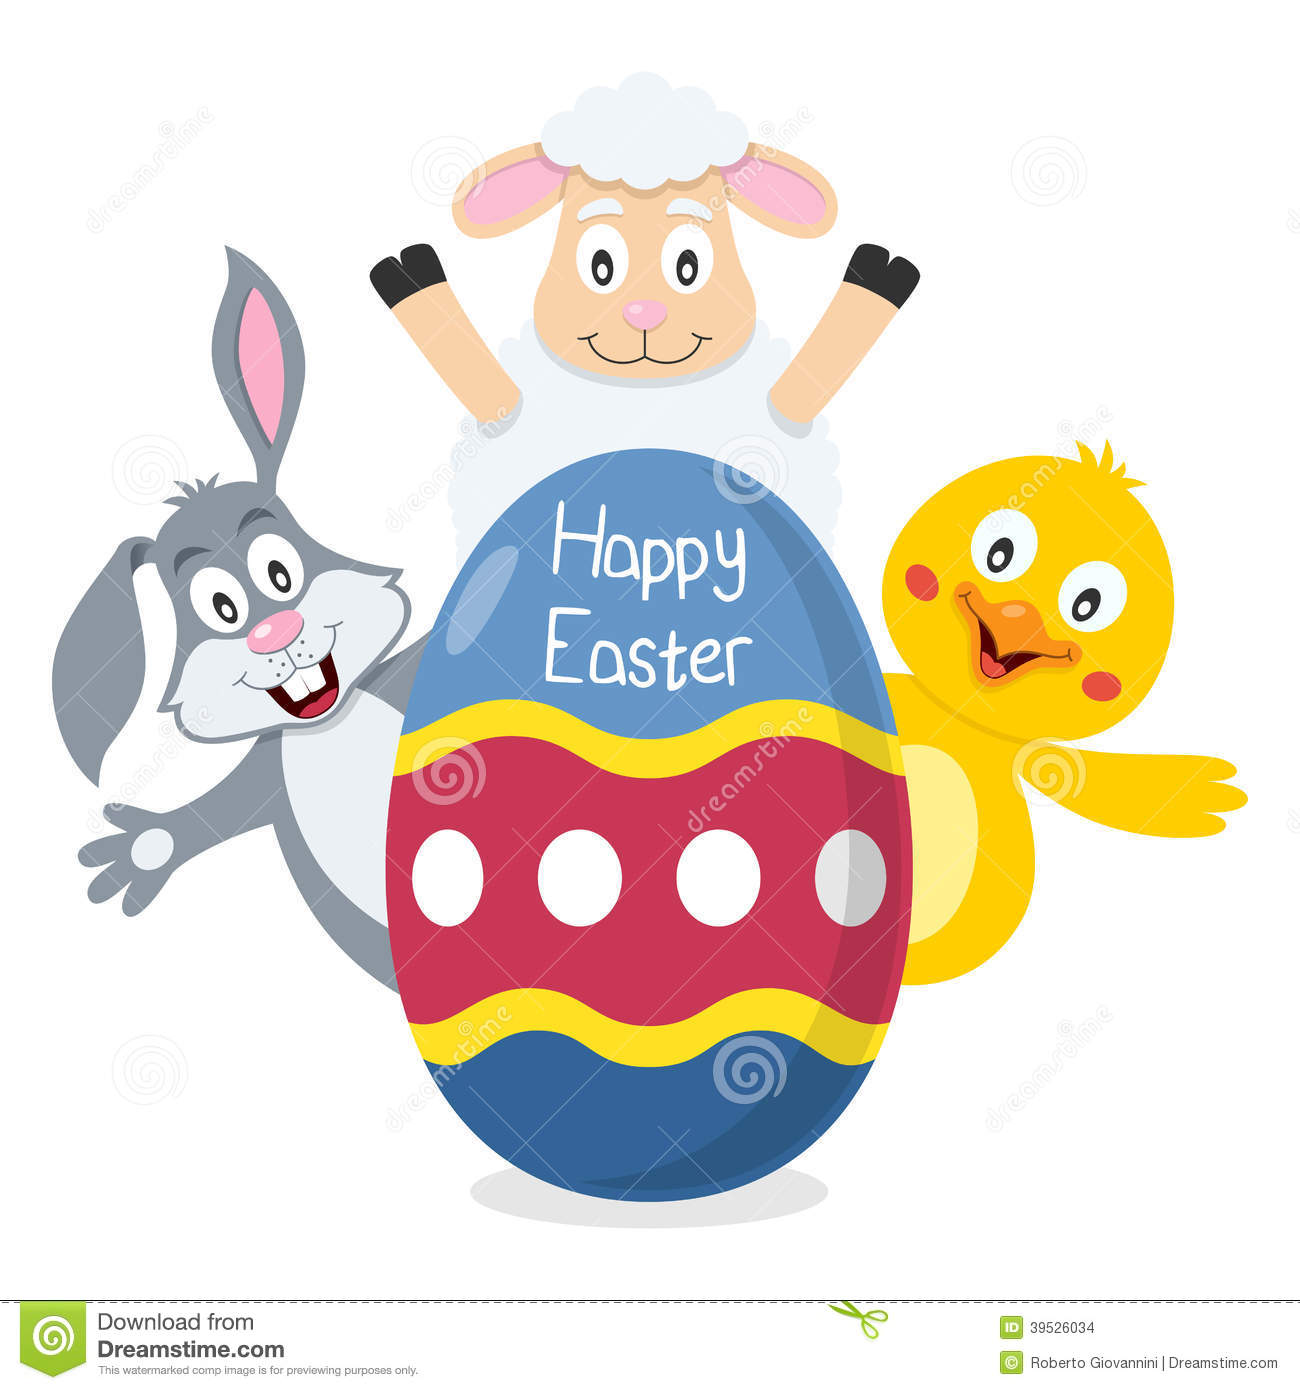 Stock Images Happy Easter Egg Animals Bunny Rabbit Lamb Cute Chick Lurking Behind Big Useful Also As Greeting Card Eps File Image39526034